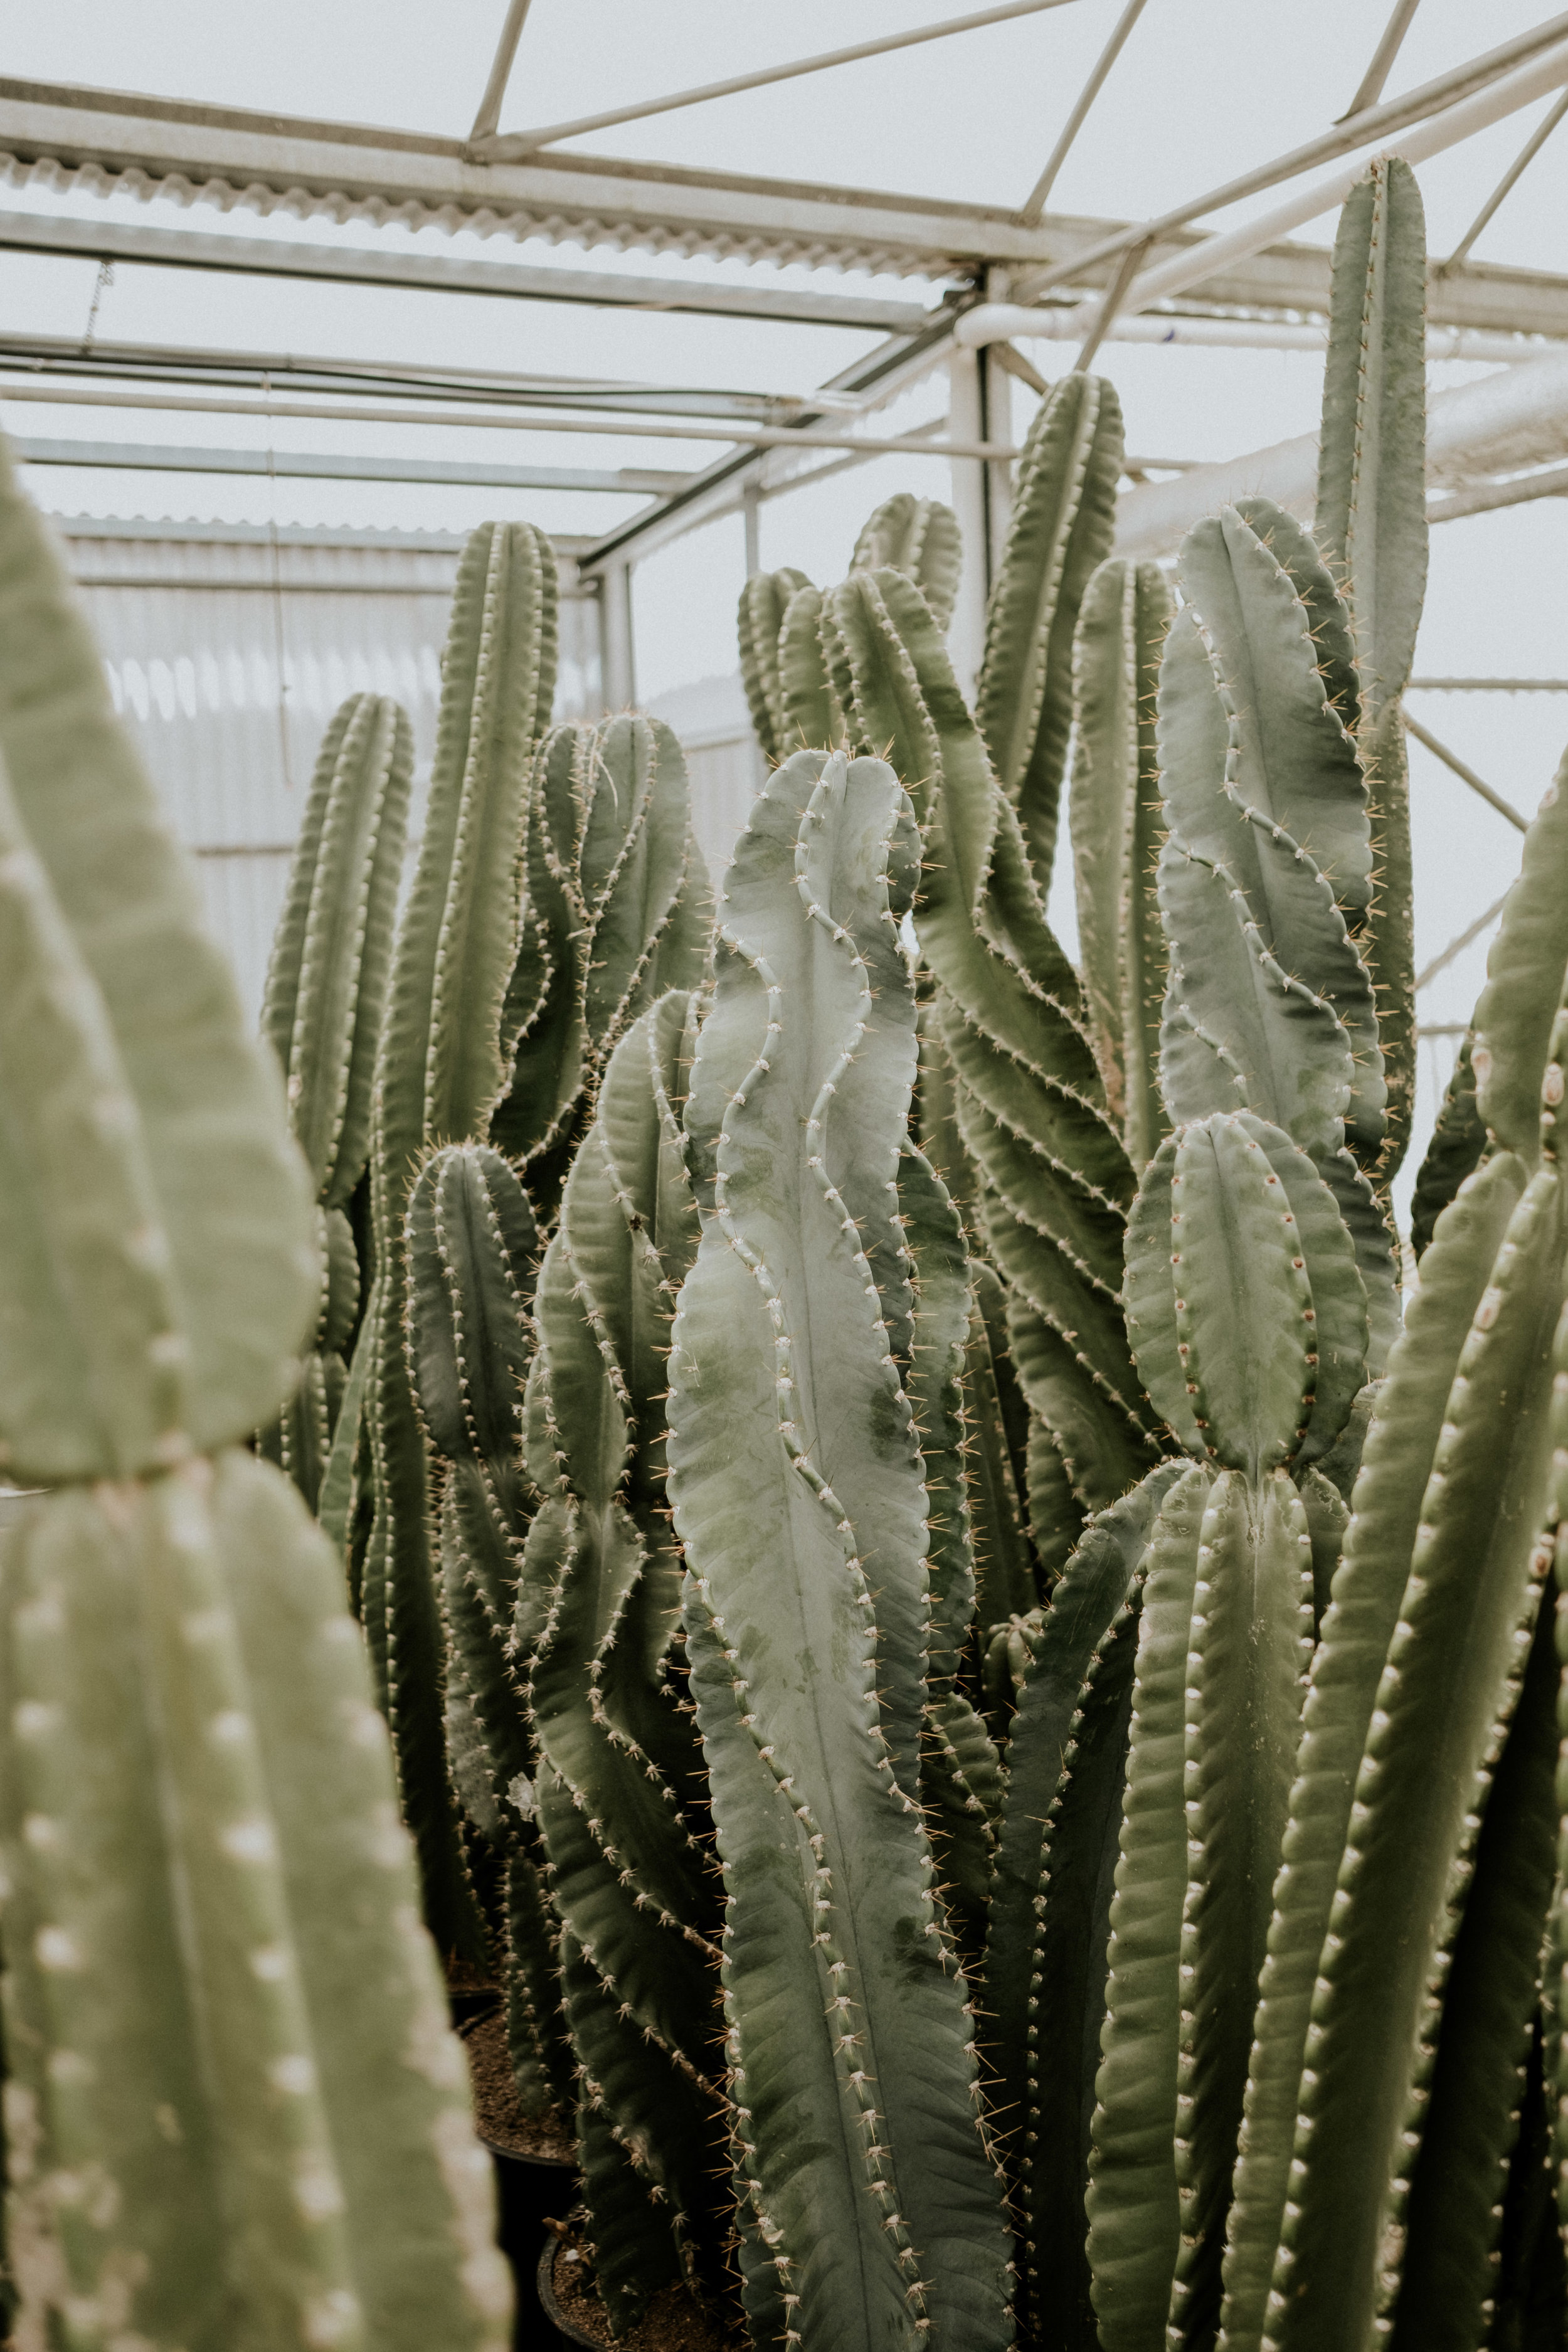 If all these babes weren't sold and backordered, I would have taken at least two home with me!! These tall guys are my favorite kind of cacti.